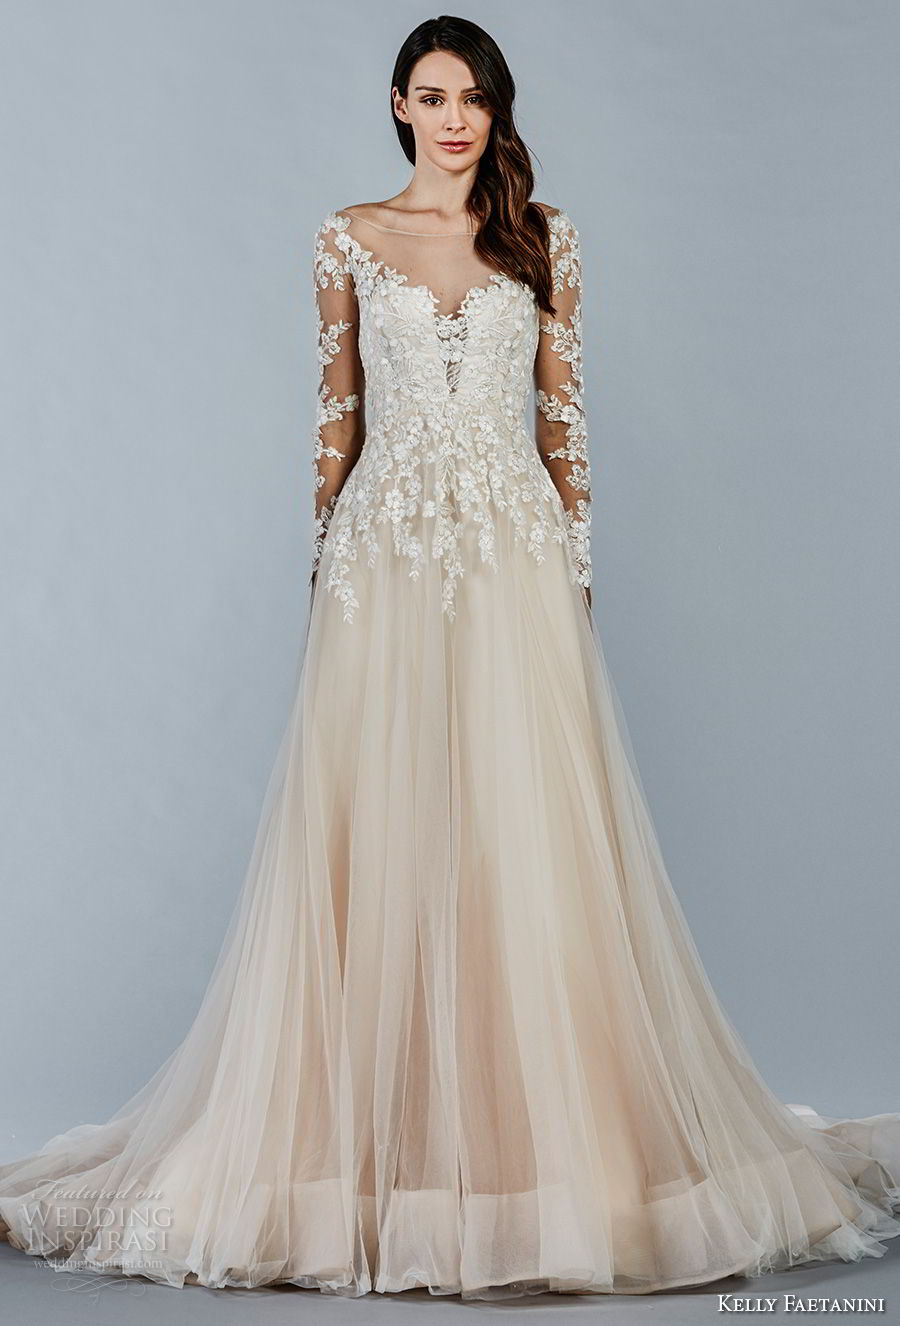 Emejing Fall Wedding Dresses With Sleeves Images - Styles & Ideas ...